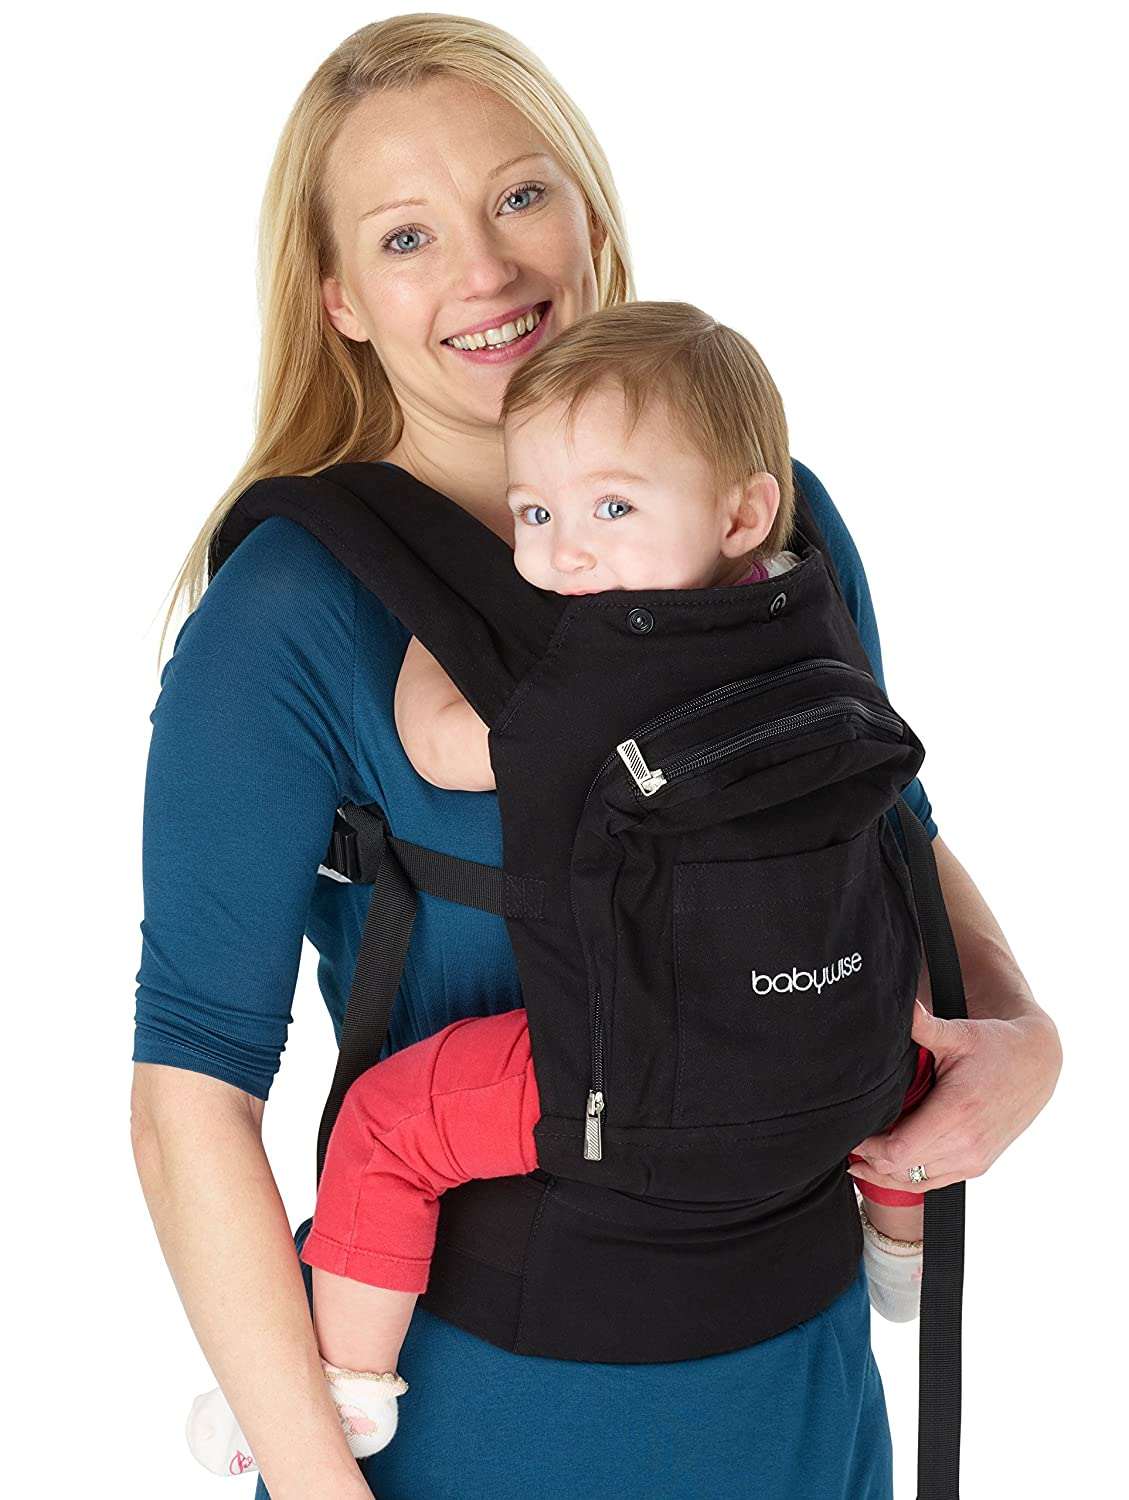 Top 10 Best Baby Carrier For 1 Year Old Review in 2020 3